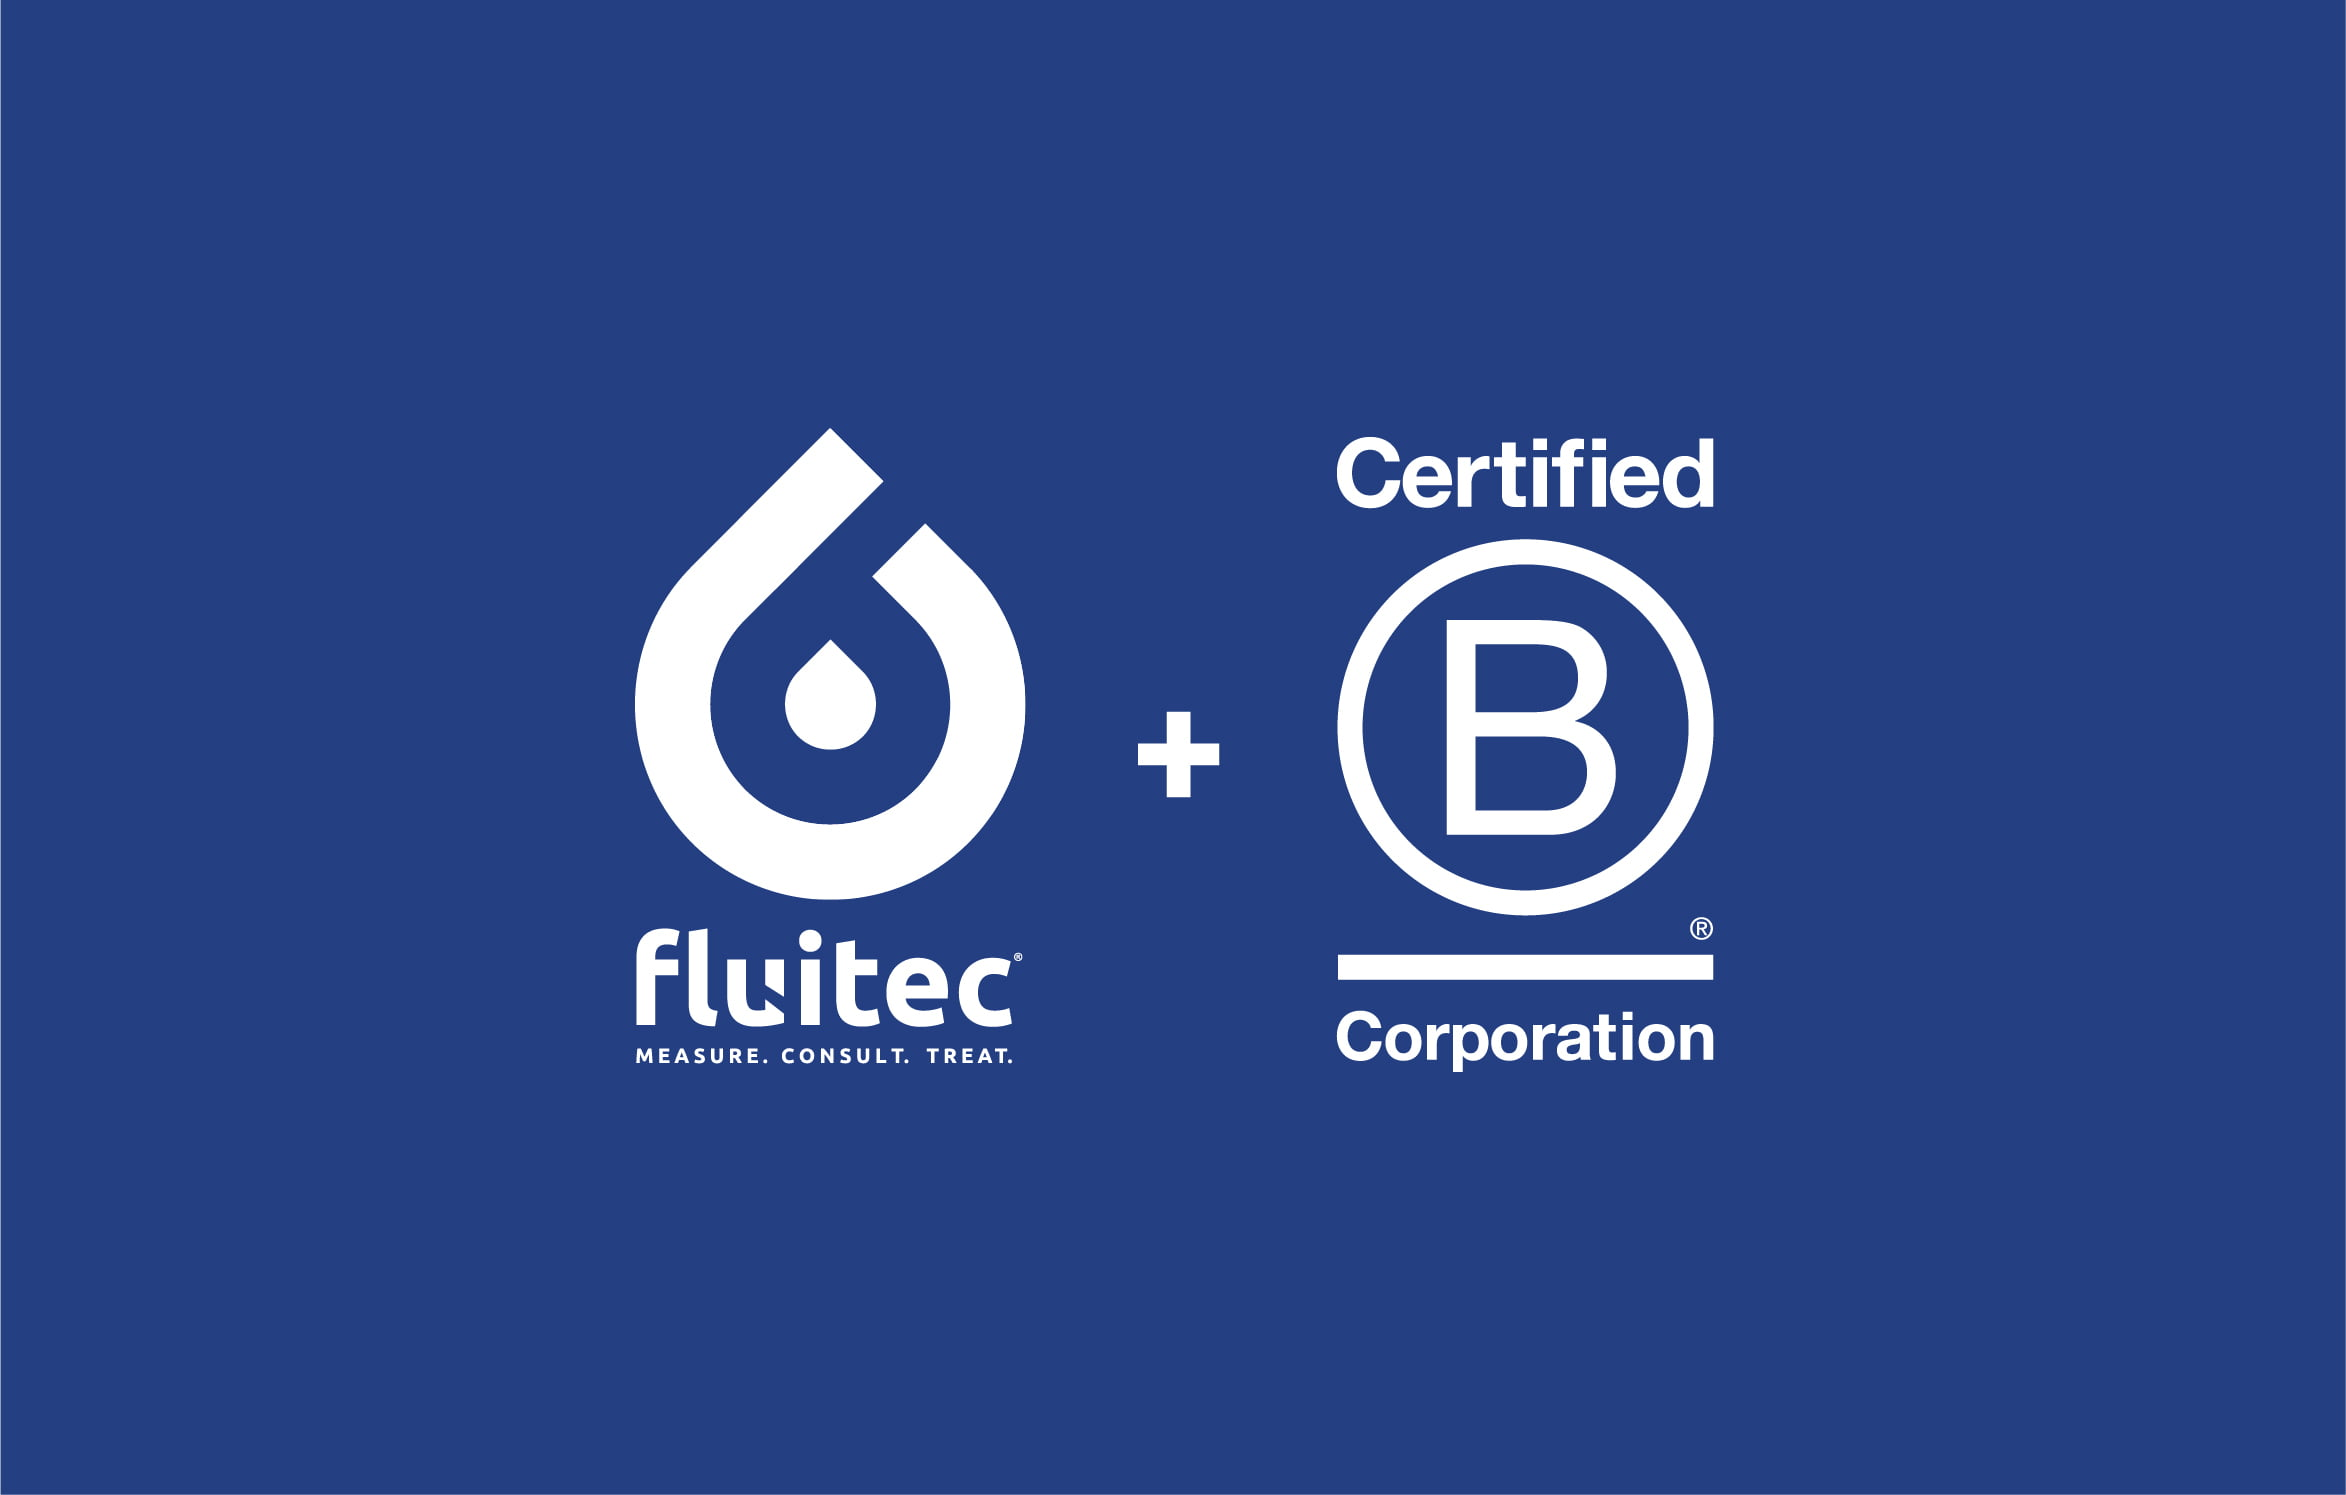 Fluitec Becomes World's First Industrial Lubricant Company to Achieve B Corp Certification